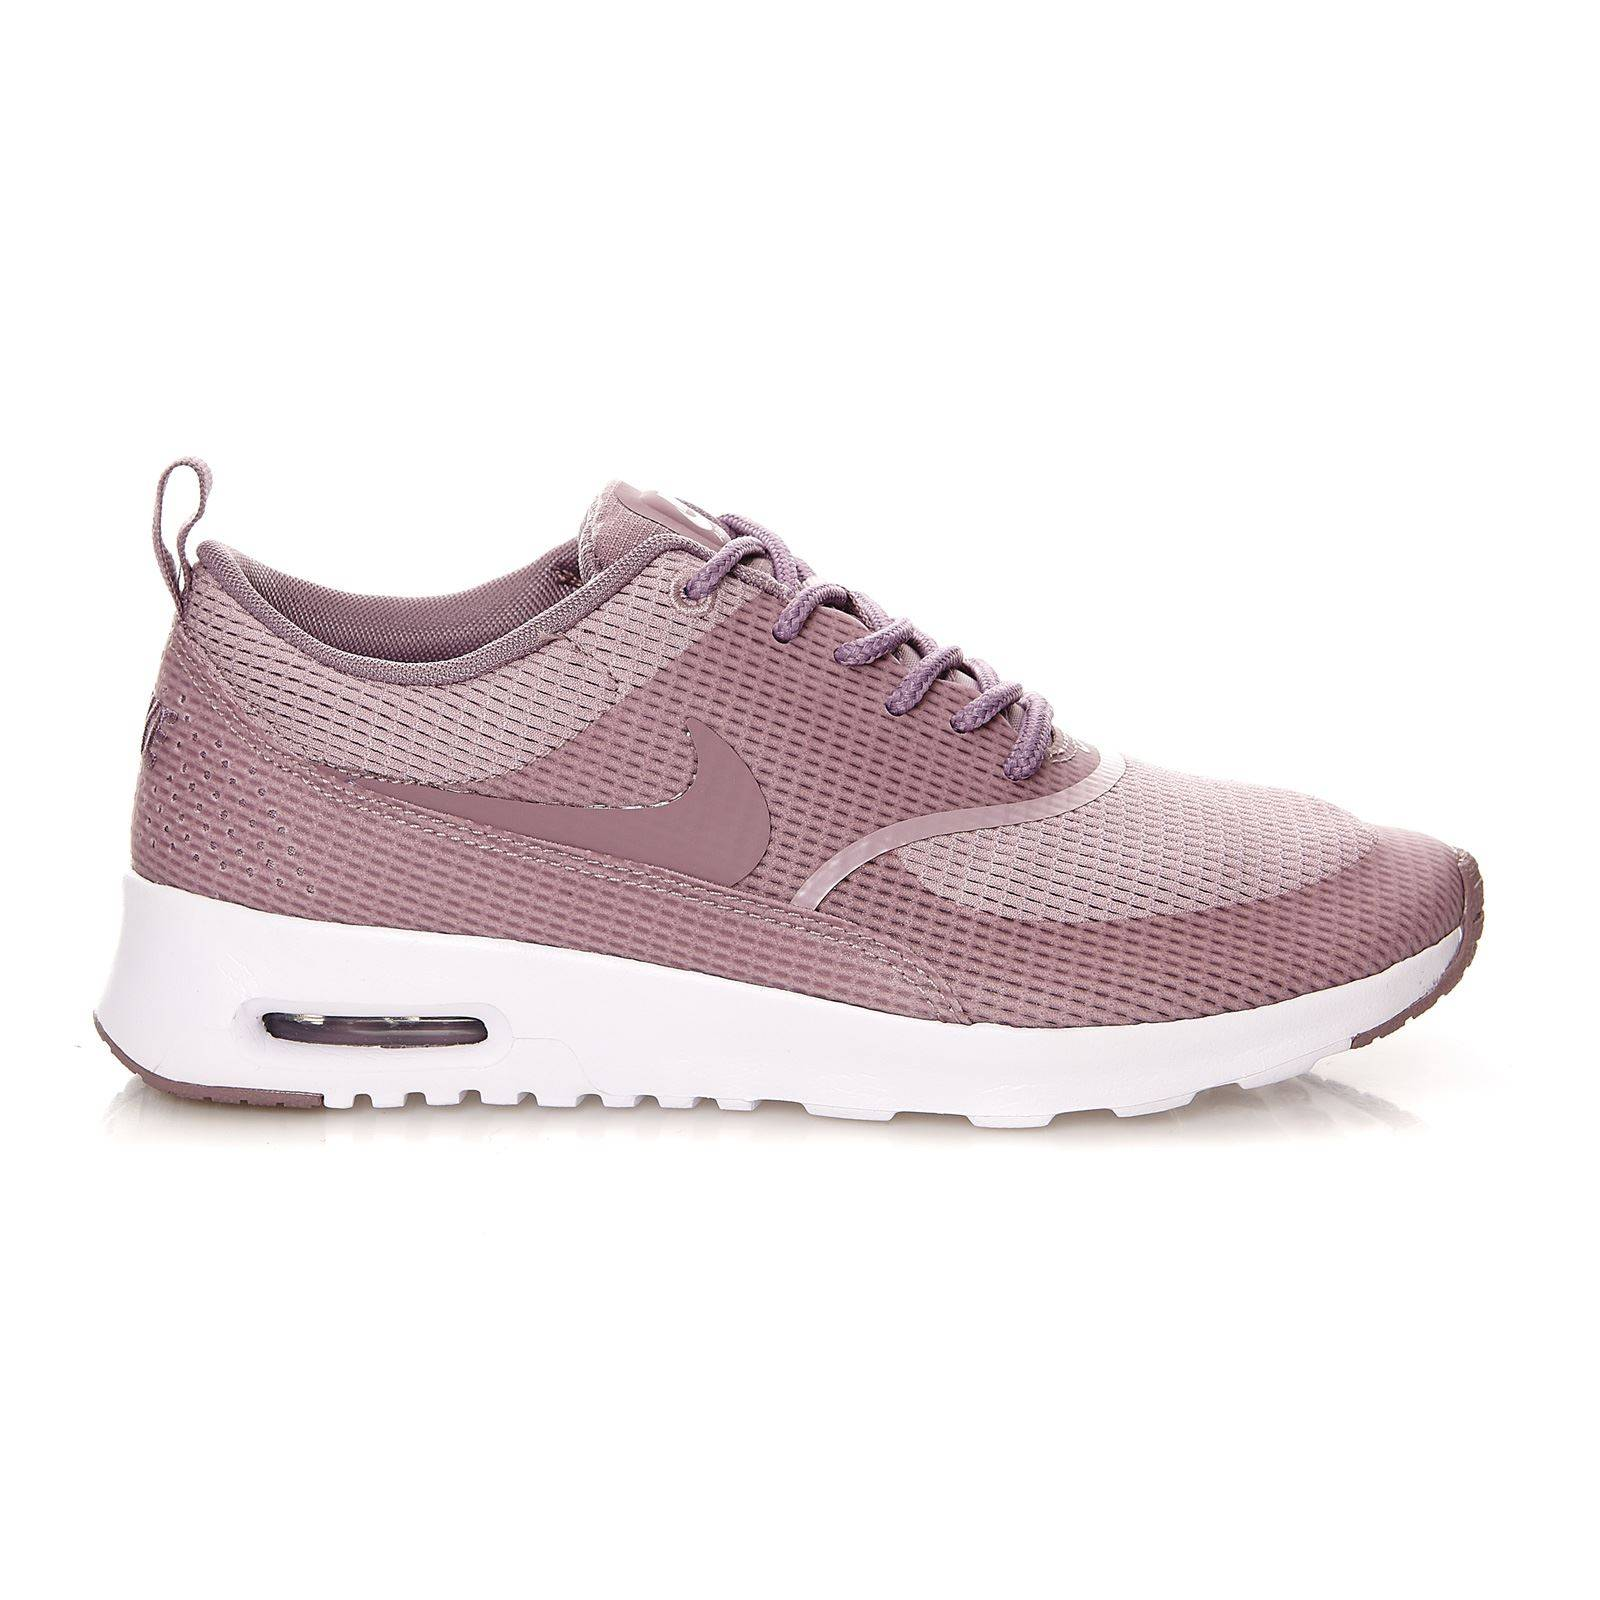 Prune Air Nike Baskets Max Brandalley Thea Mode wRAAqXdTx